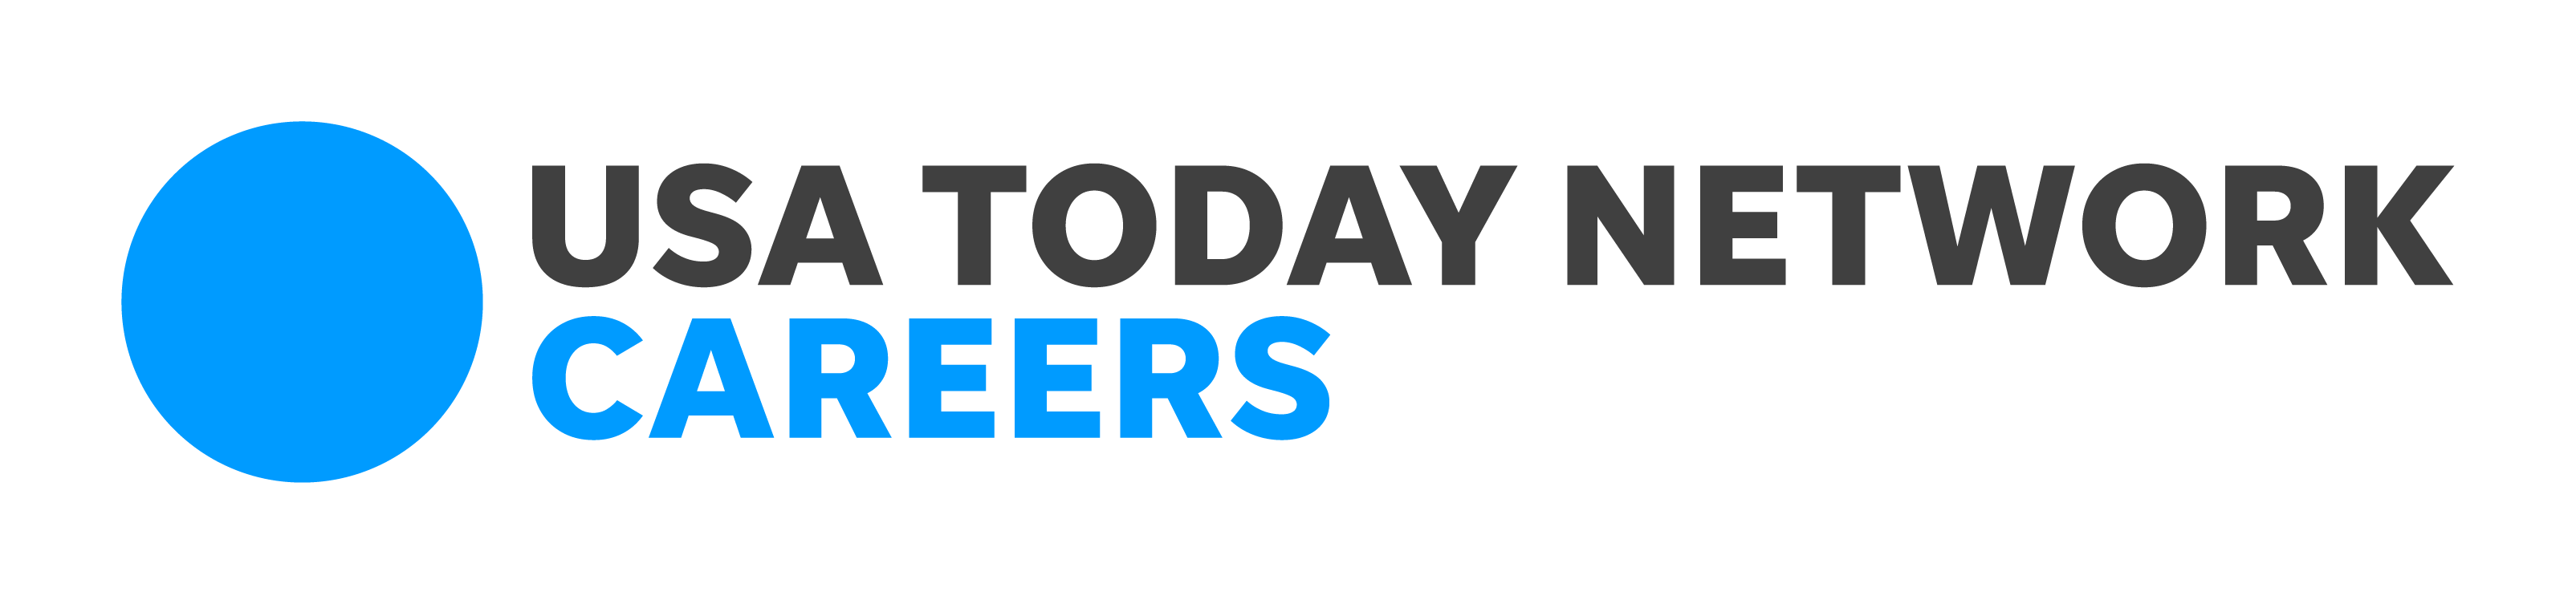 USA TODAY NETWORK Careers and More